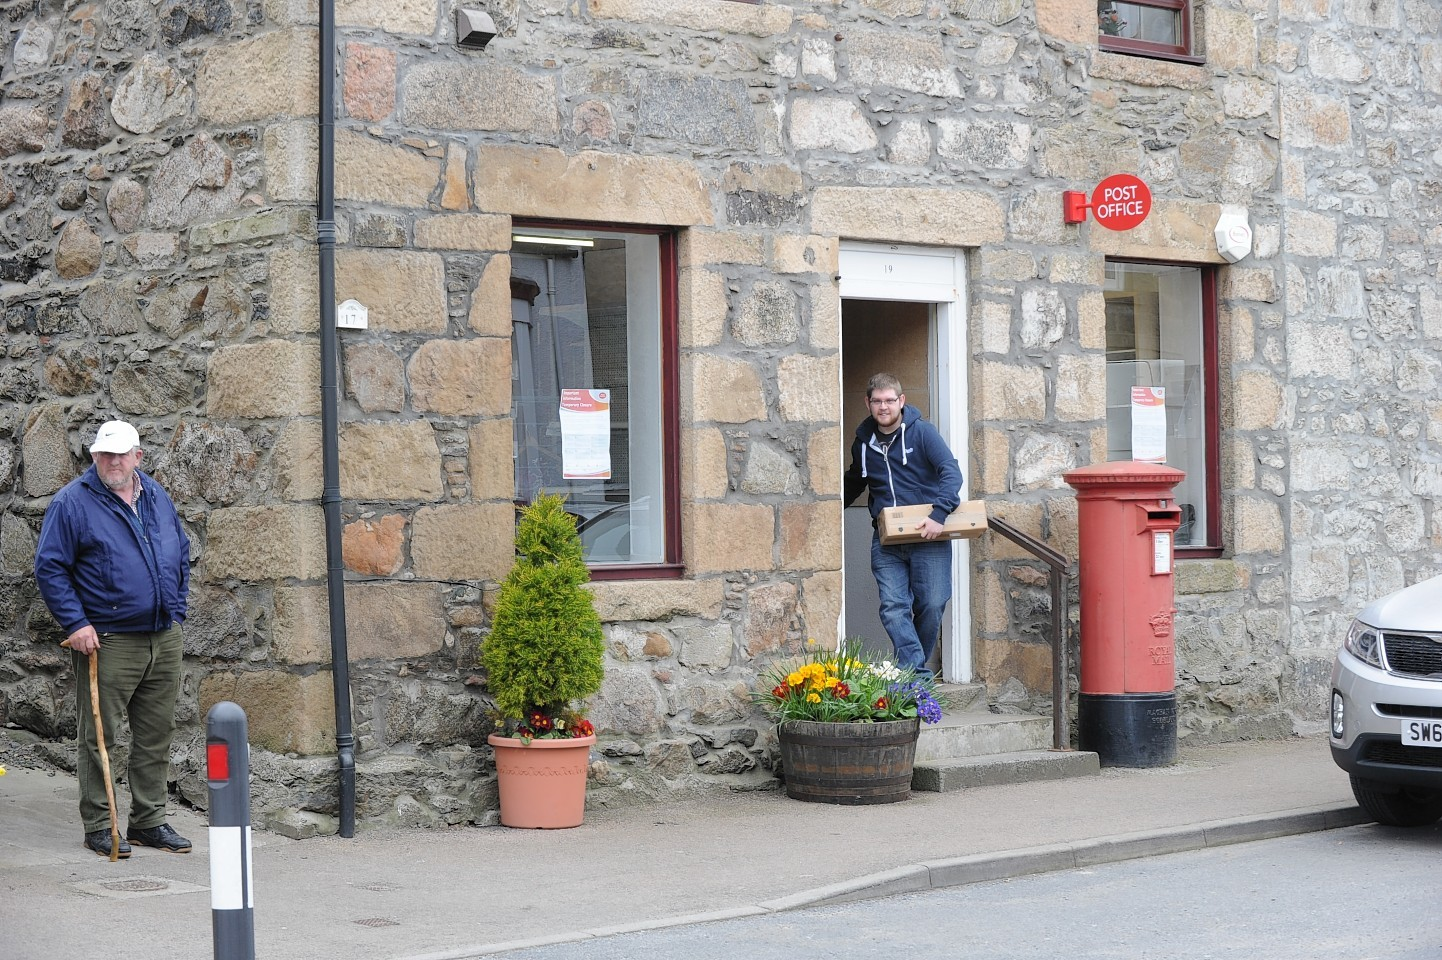 Newburgh Post Office has now been closed